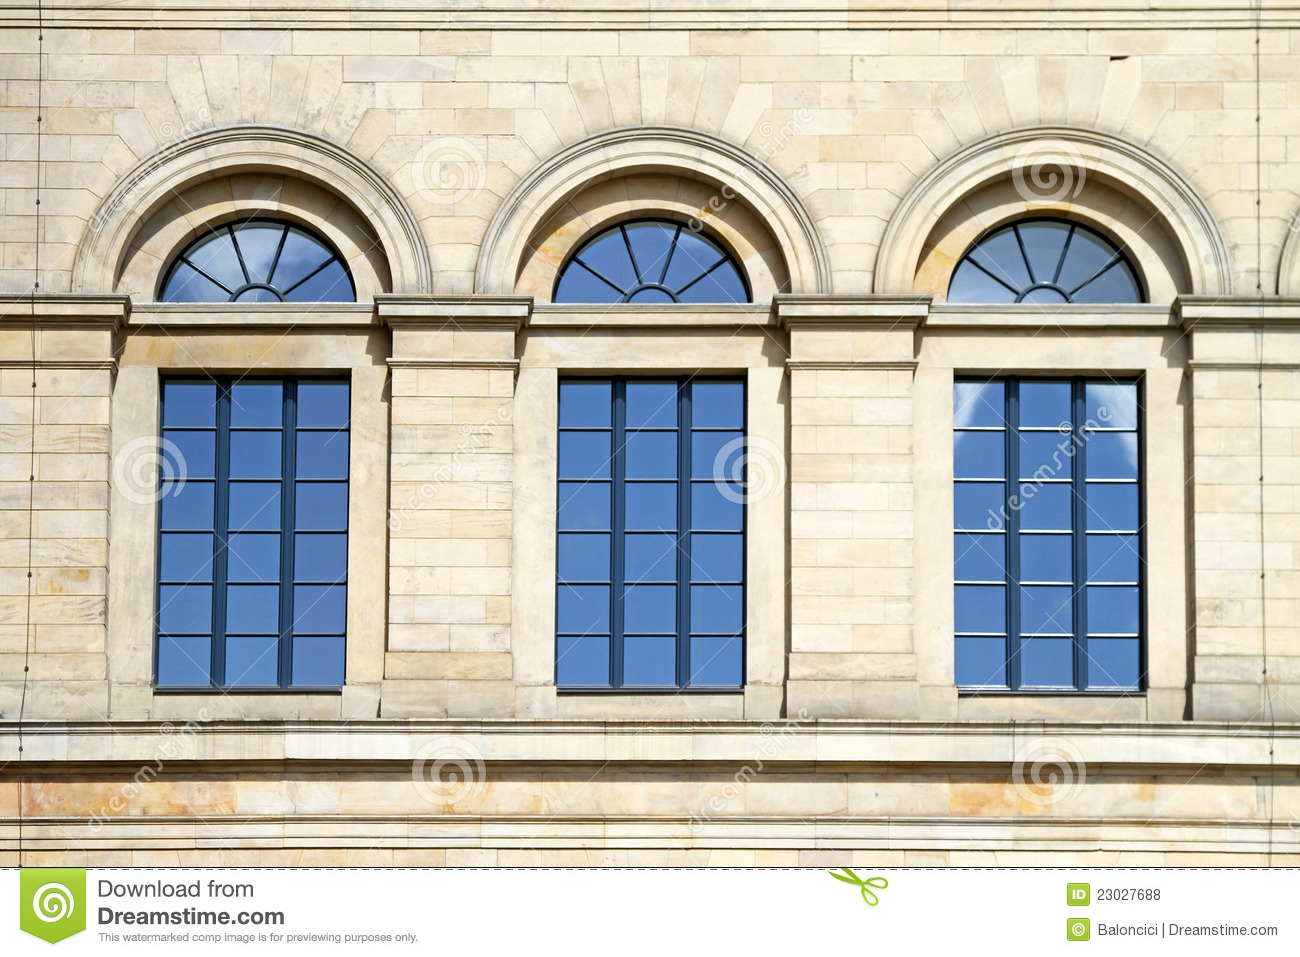 Arch windows stock photo image of arch stone window for Arch window replacement